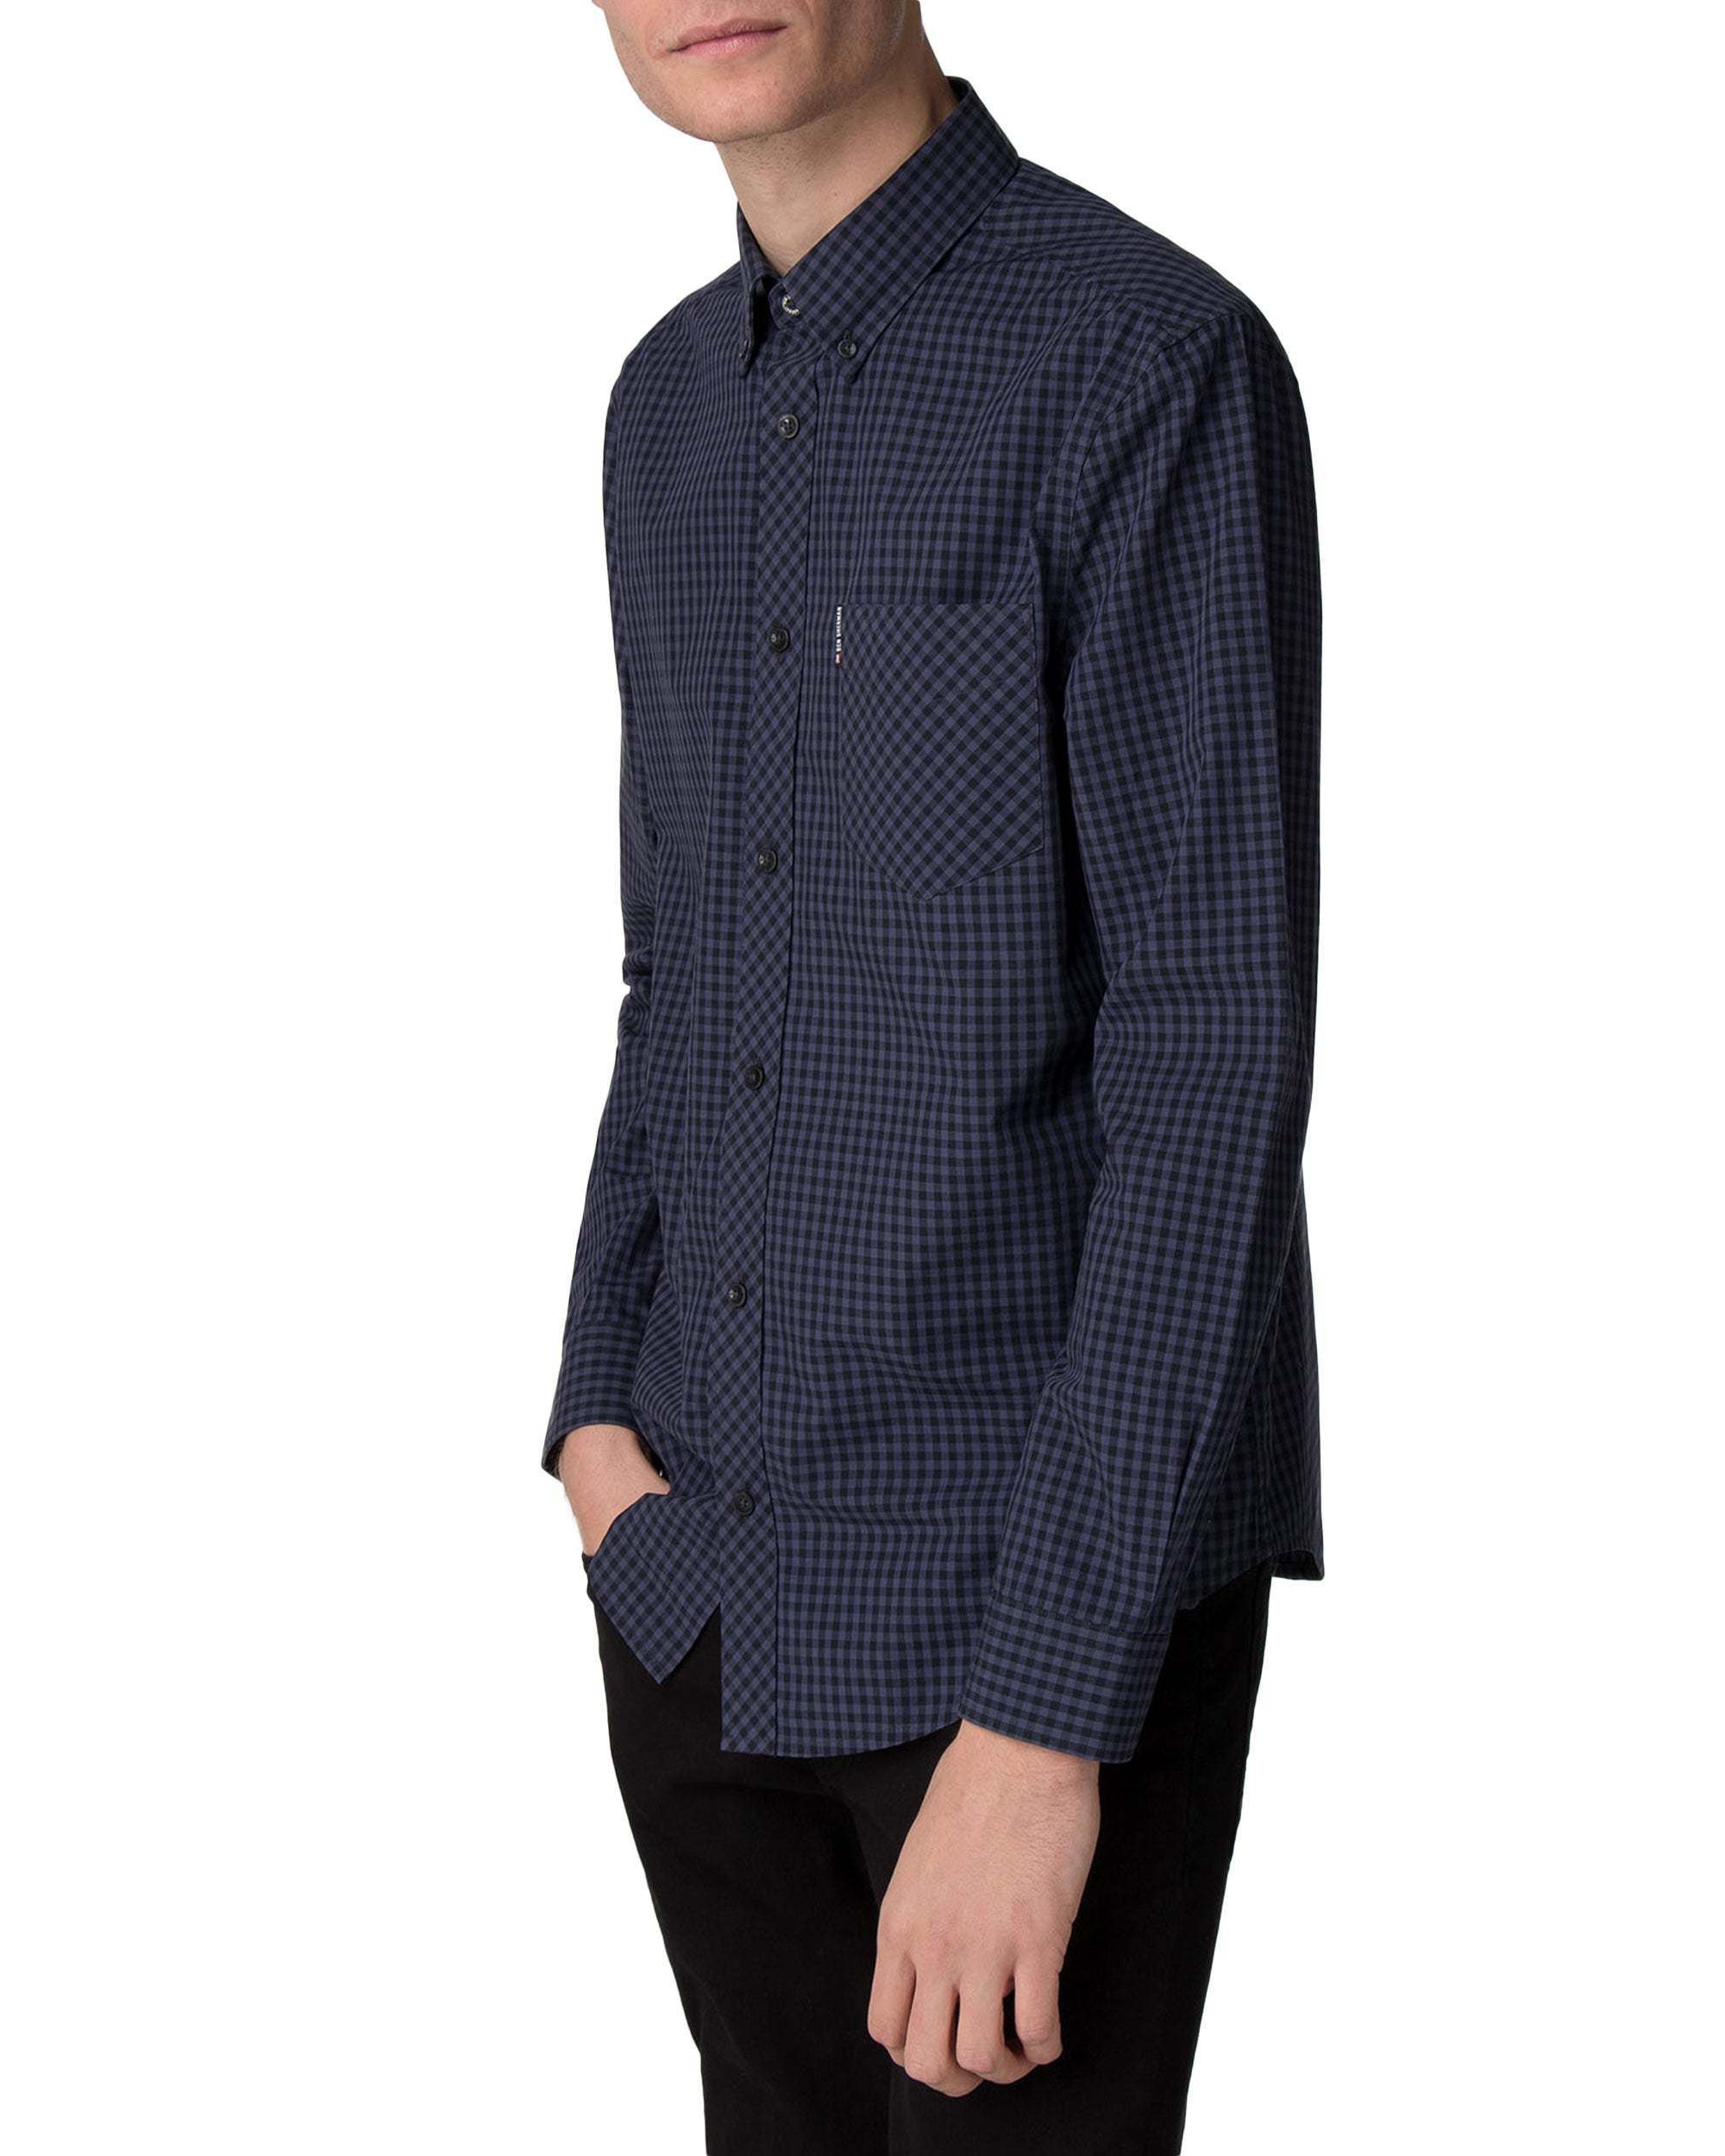 Long-Sleeve Core Gingham Shirt - Phantom